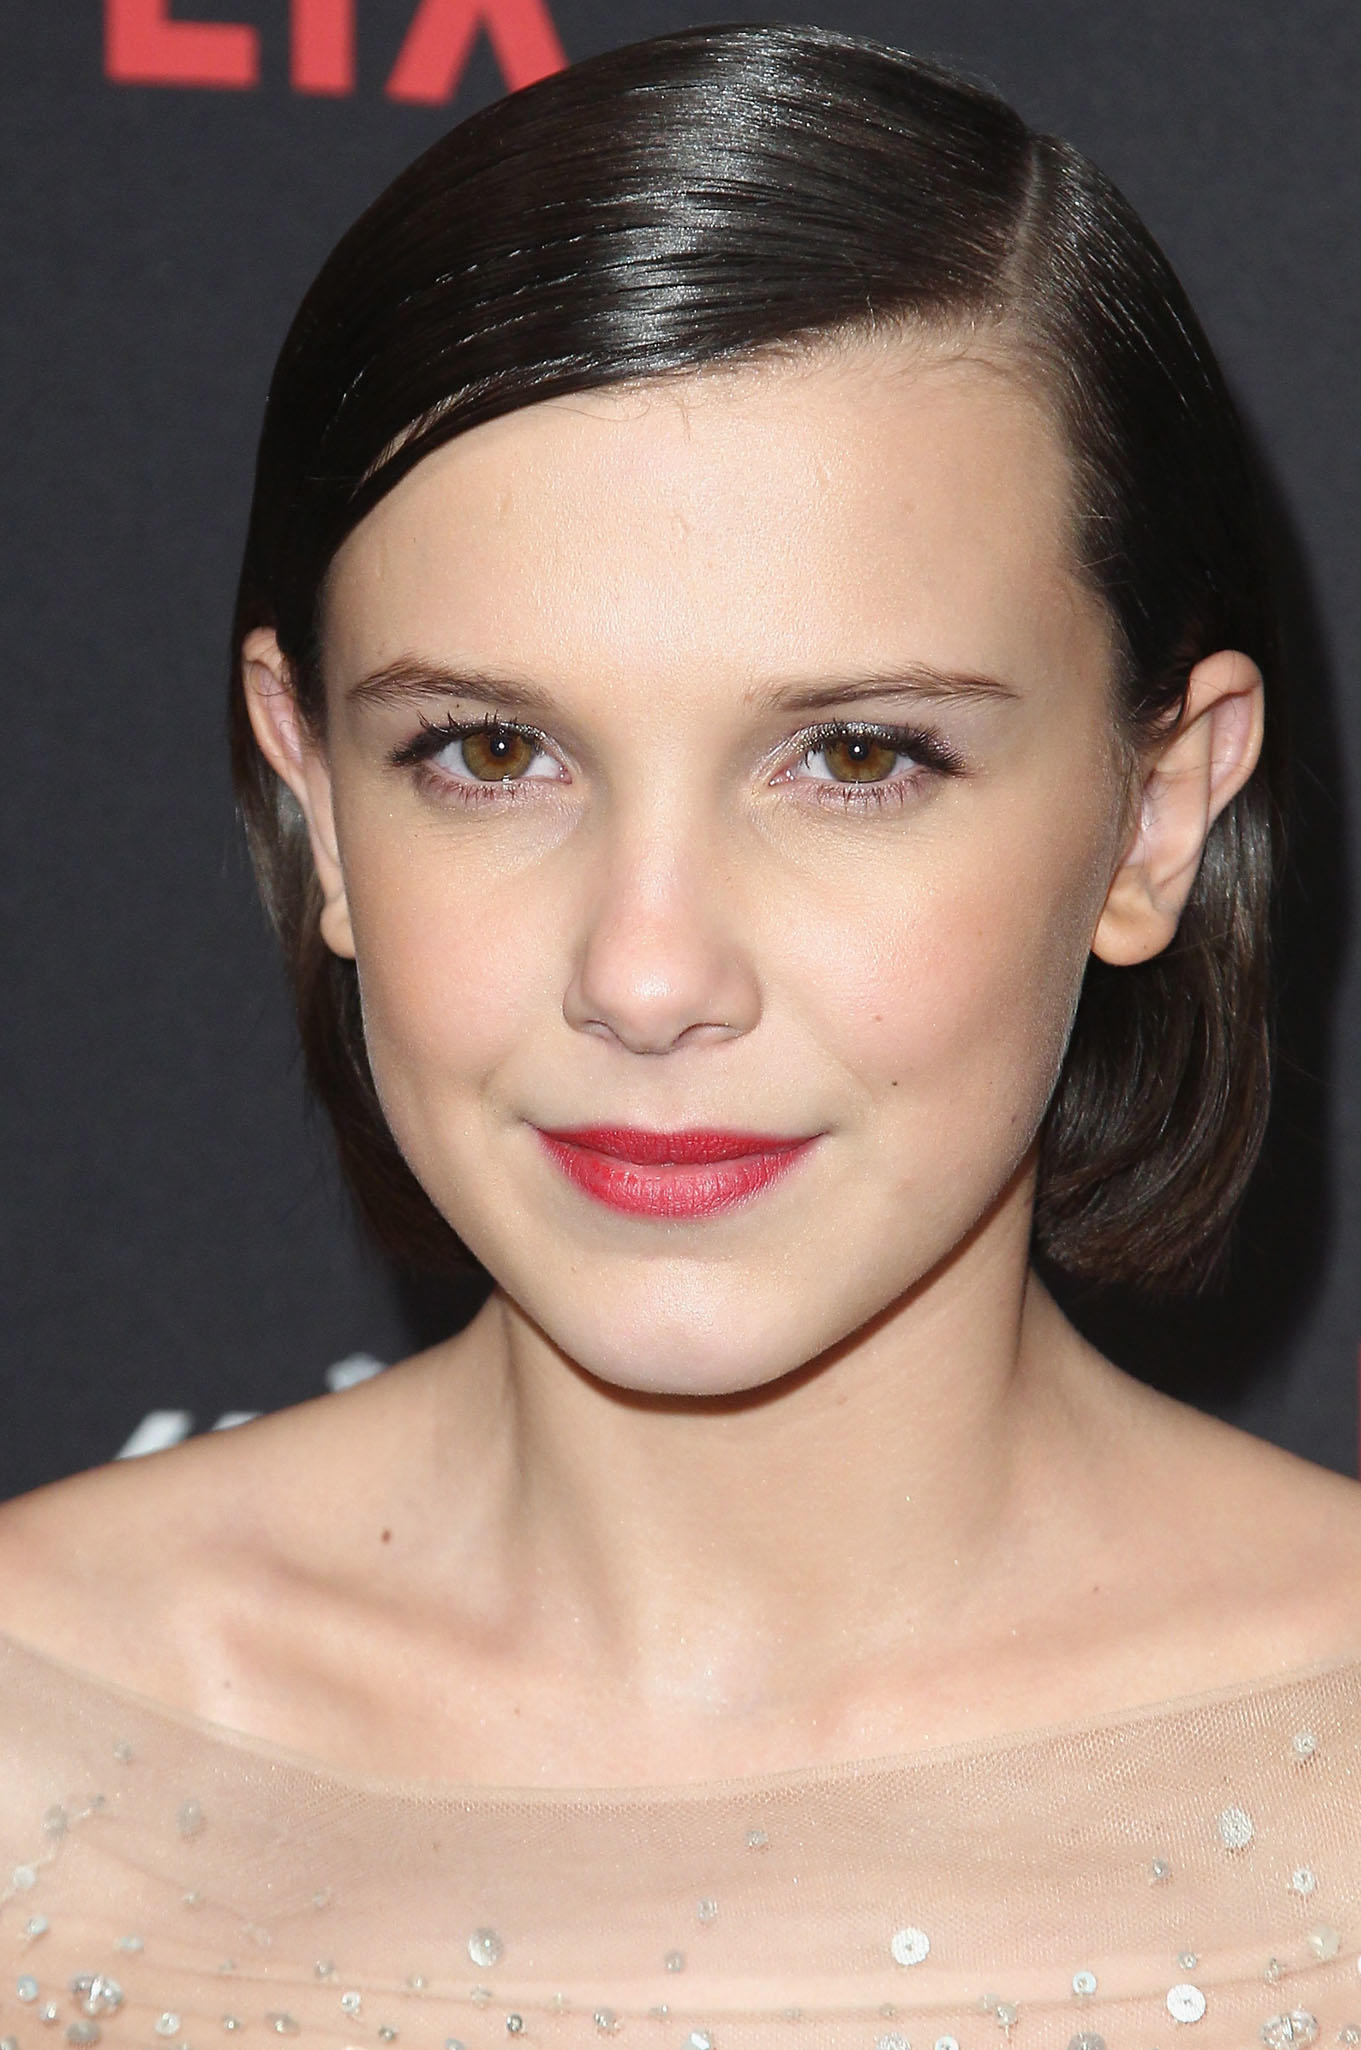 Millie Bobby Brown at The Weinstein Company and Netflix Golden Globe Party in Beverly Hills, CA.